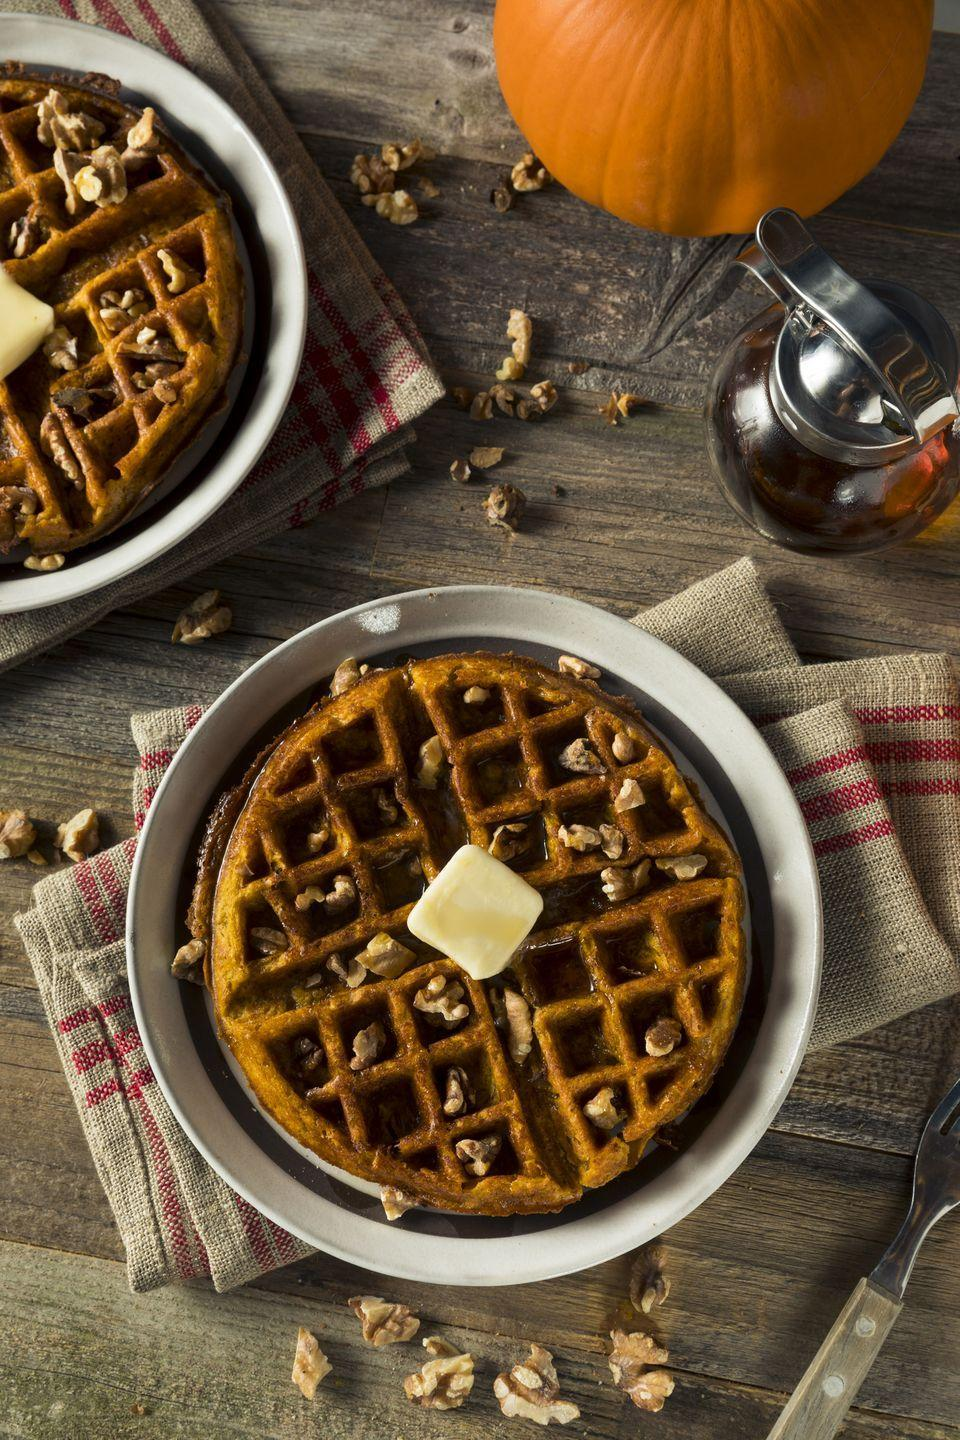 """<p>If you have small children, let them help by choosing easy recipes like pancakes or waffles. The unexpected punch of crystallized ginger gives tender pumpkin waffles a grown-up twist. </p><p><strong><a href=""""https://www.countryliving.com/food-drinks/recipes/a2992/pumpkin-ginger-waffles-recipe/"""" rel=""""nofollow noopener"""" target=""""_blank"""" data-ylk=""""slk:Get the recipe."""" class=""""link rapid-noclick-resp"""">Get the recipe.</a></strong><br></p>"""